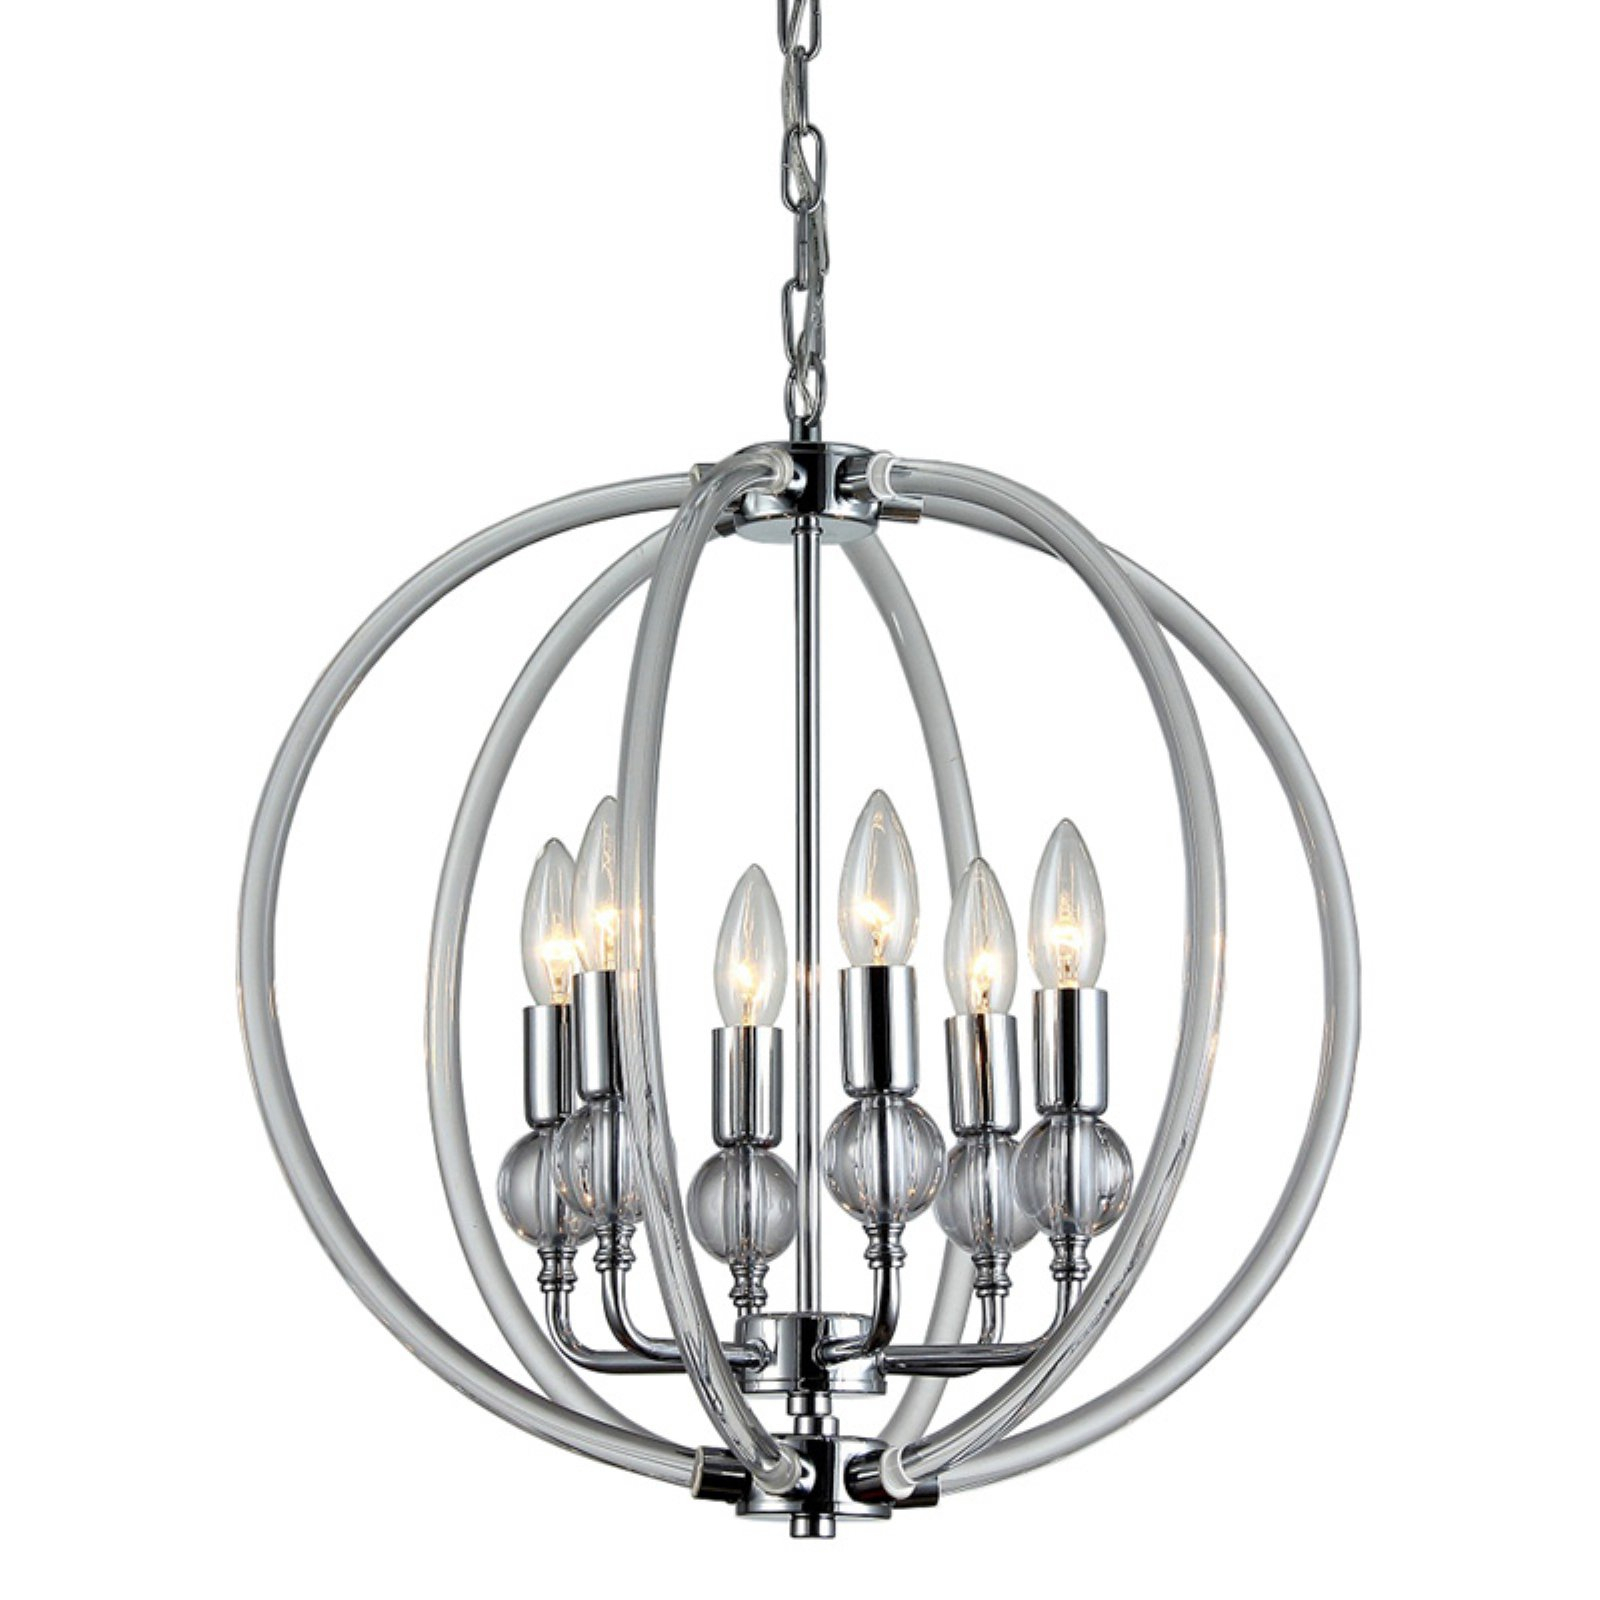 Warehouse Of Tiffany Cage Globe Chandelier | Products In Pertaining To Hendry 4 Light Globe Chandeliers (View 11 of 30)